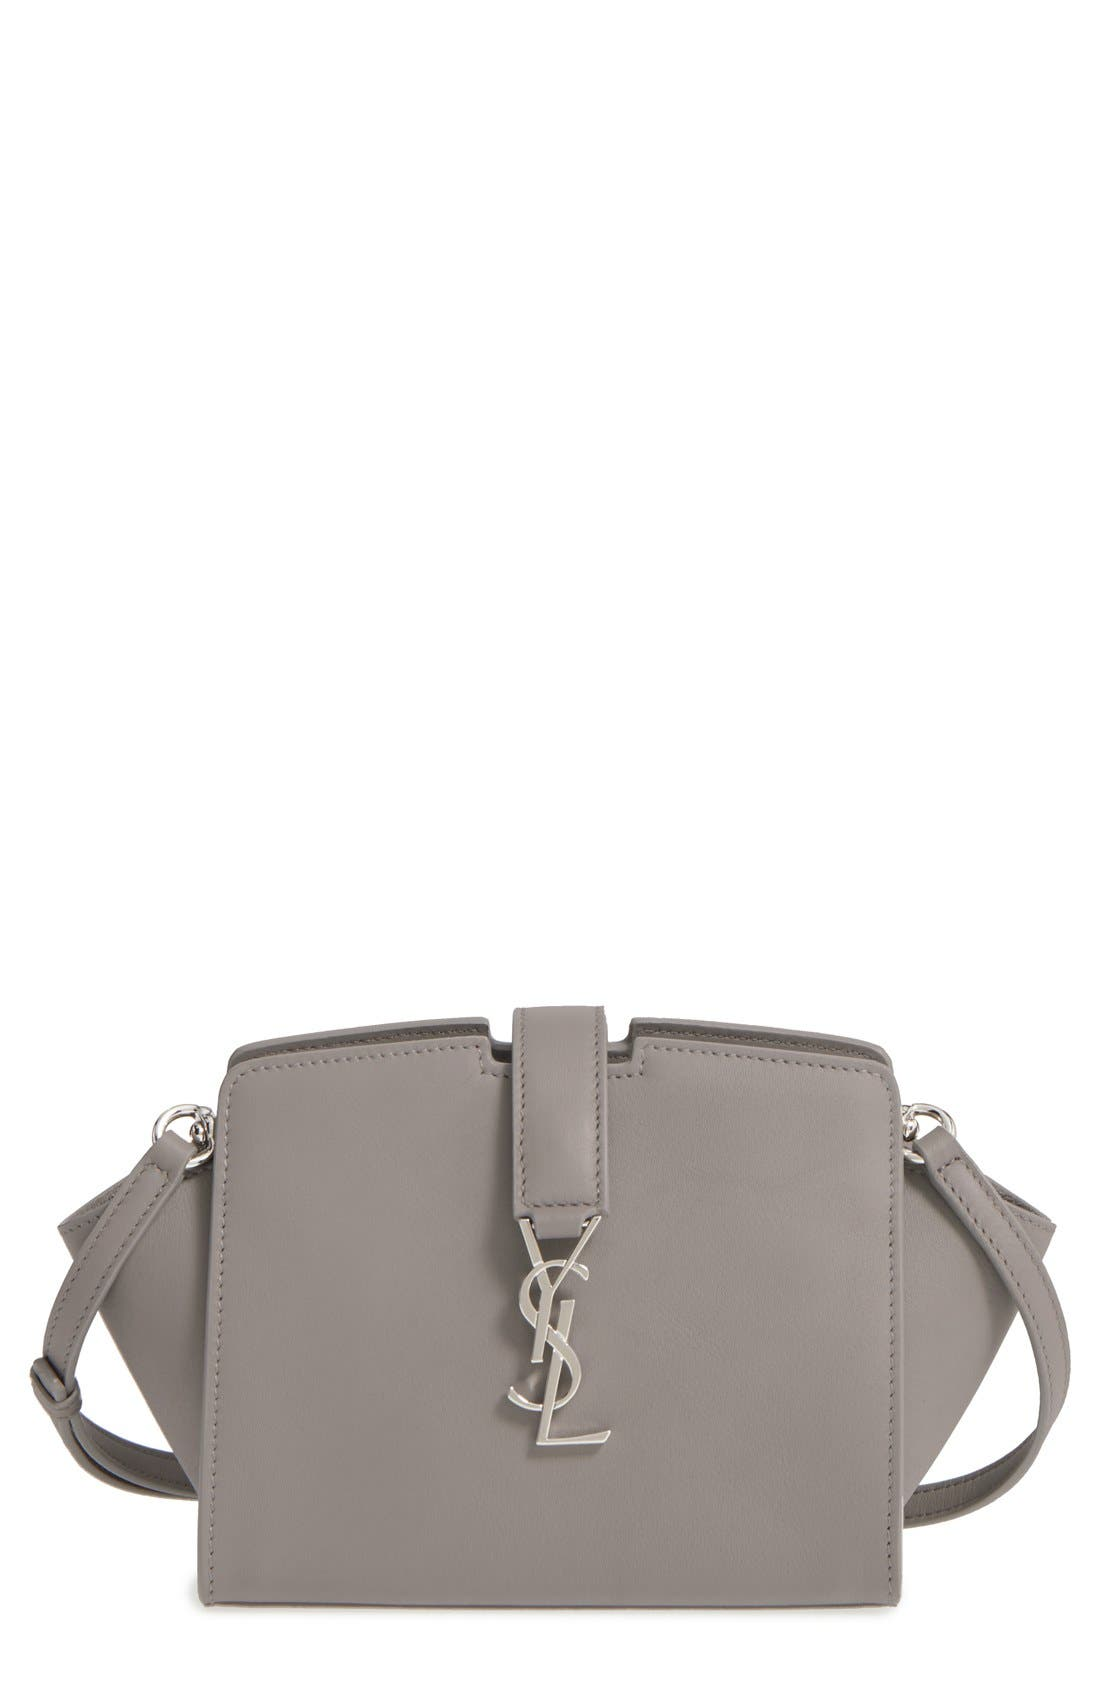 Toy Cabas Leather Crossbody Bag,                         Main,                         color, 020